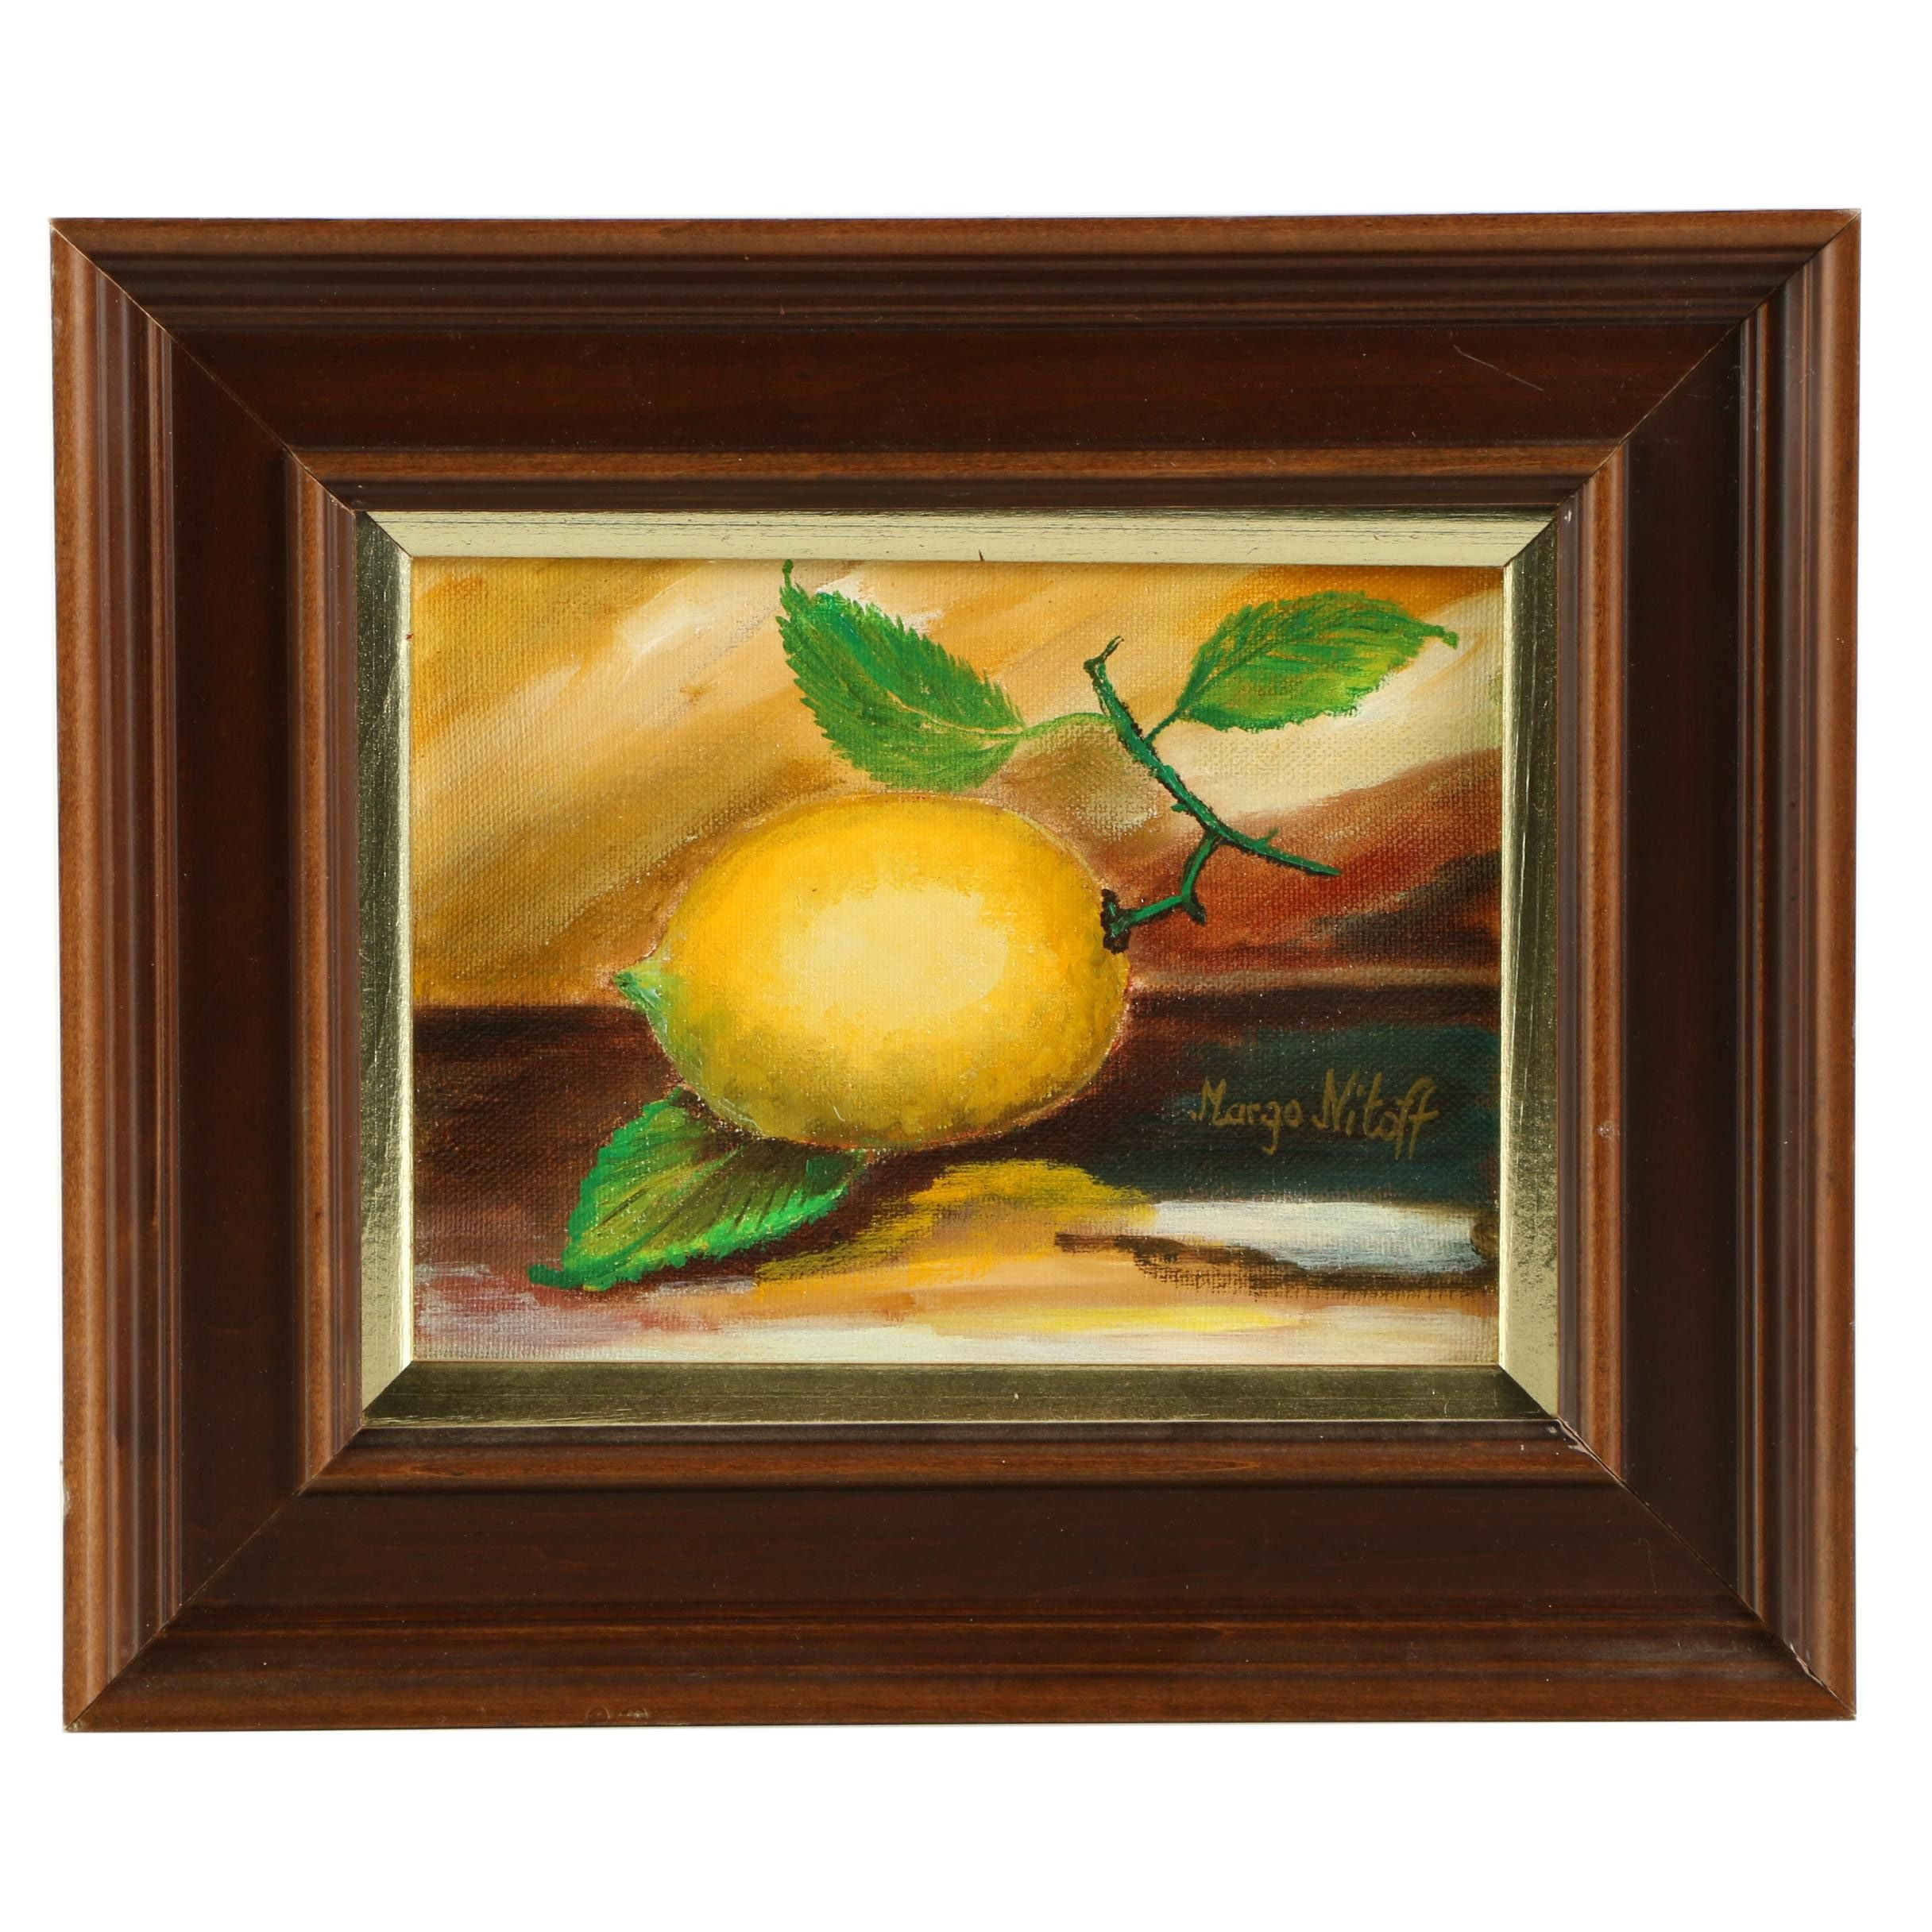 Margo Nitoff Oil Painting of a Lemon